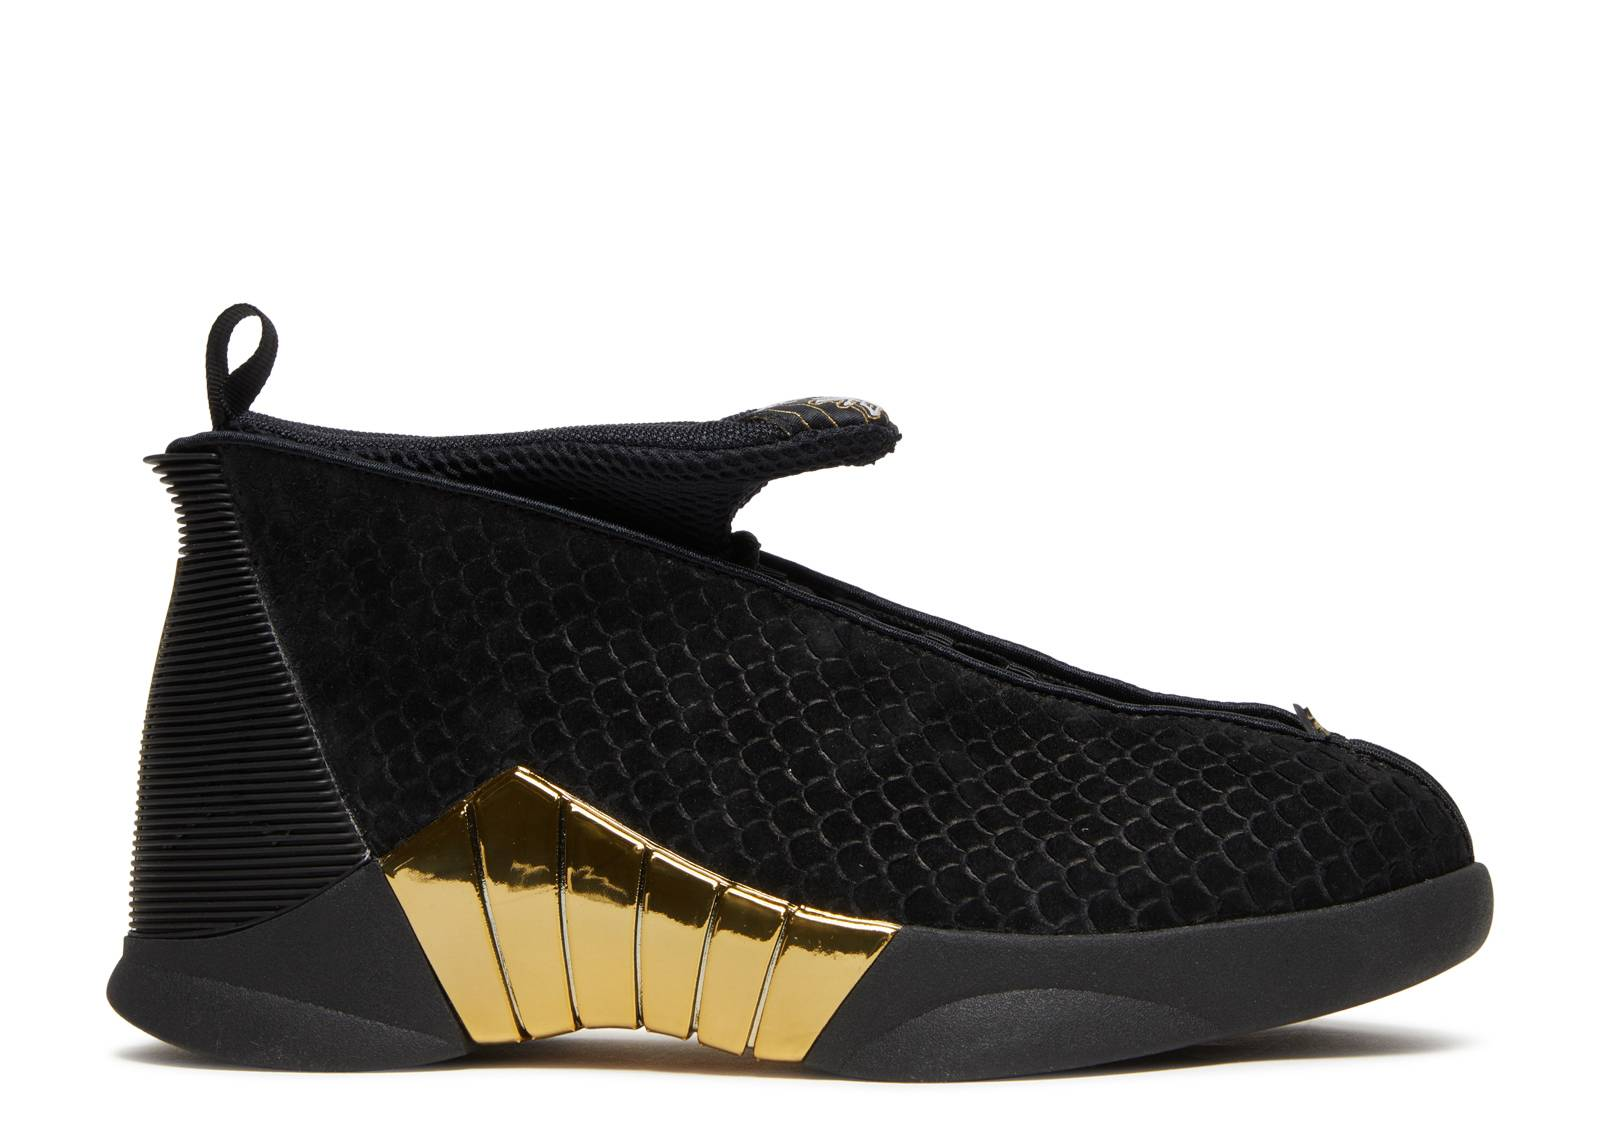 air jordan 15 retro DB (gs)